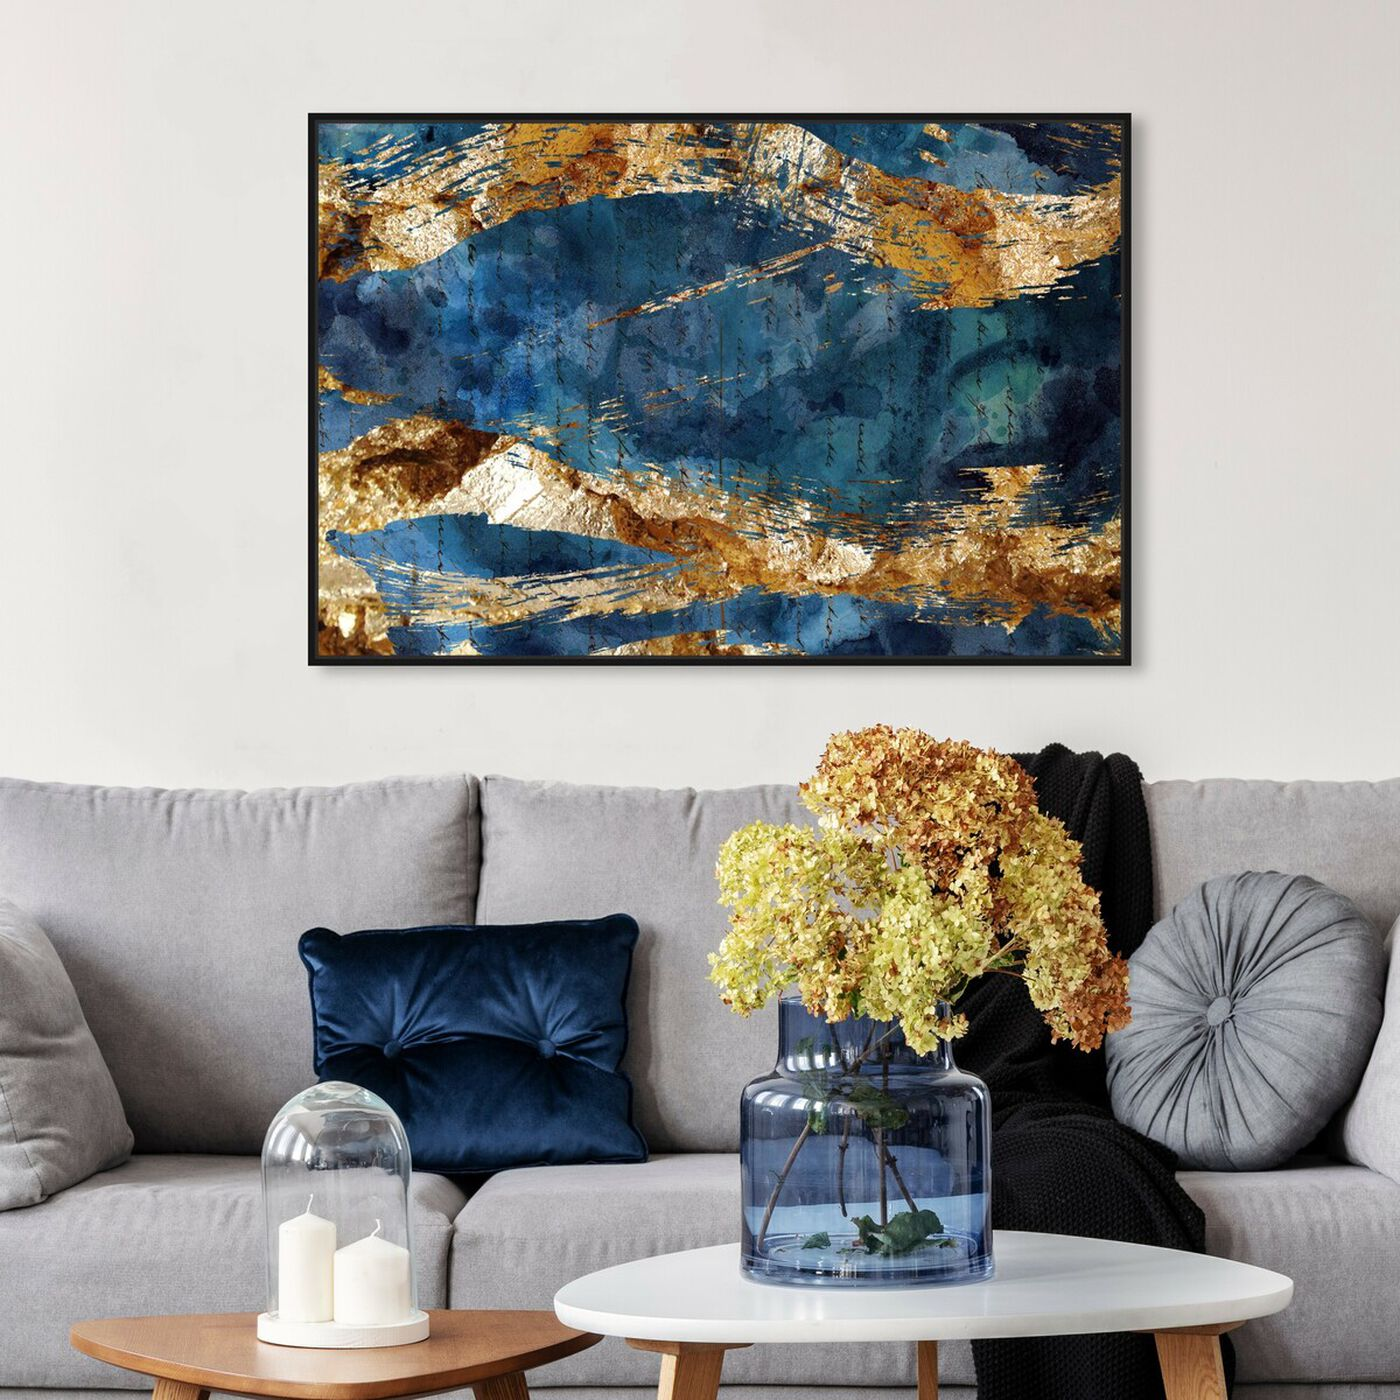 Hanging view of Marea Alta - Signature Collection featuring abstract and watercolor art.